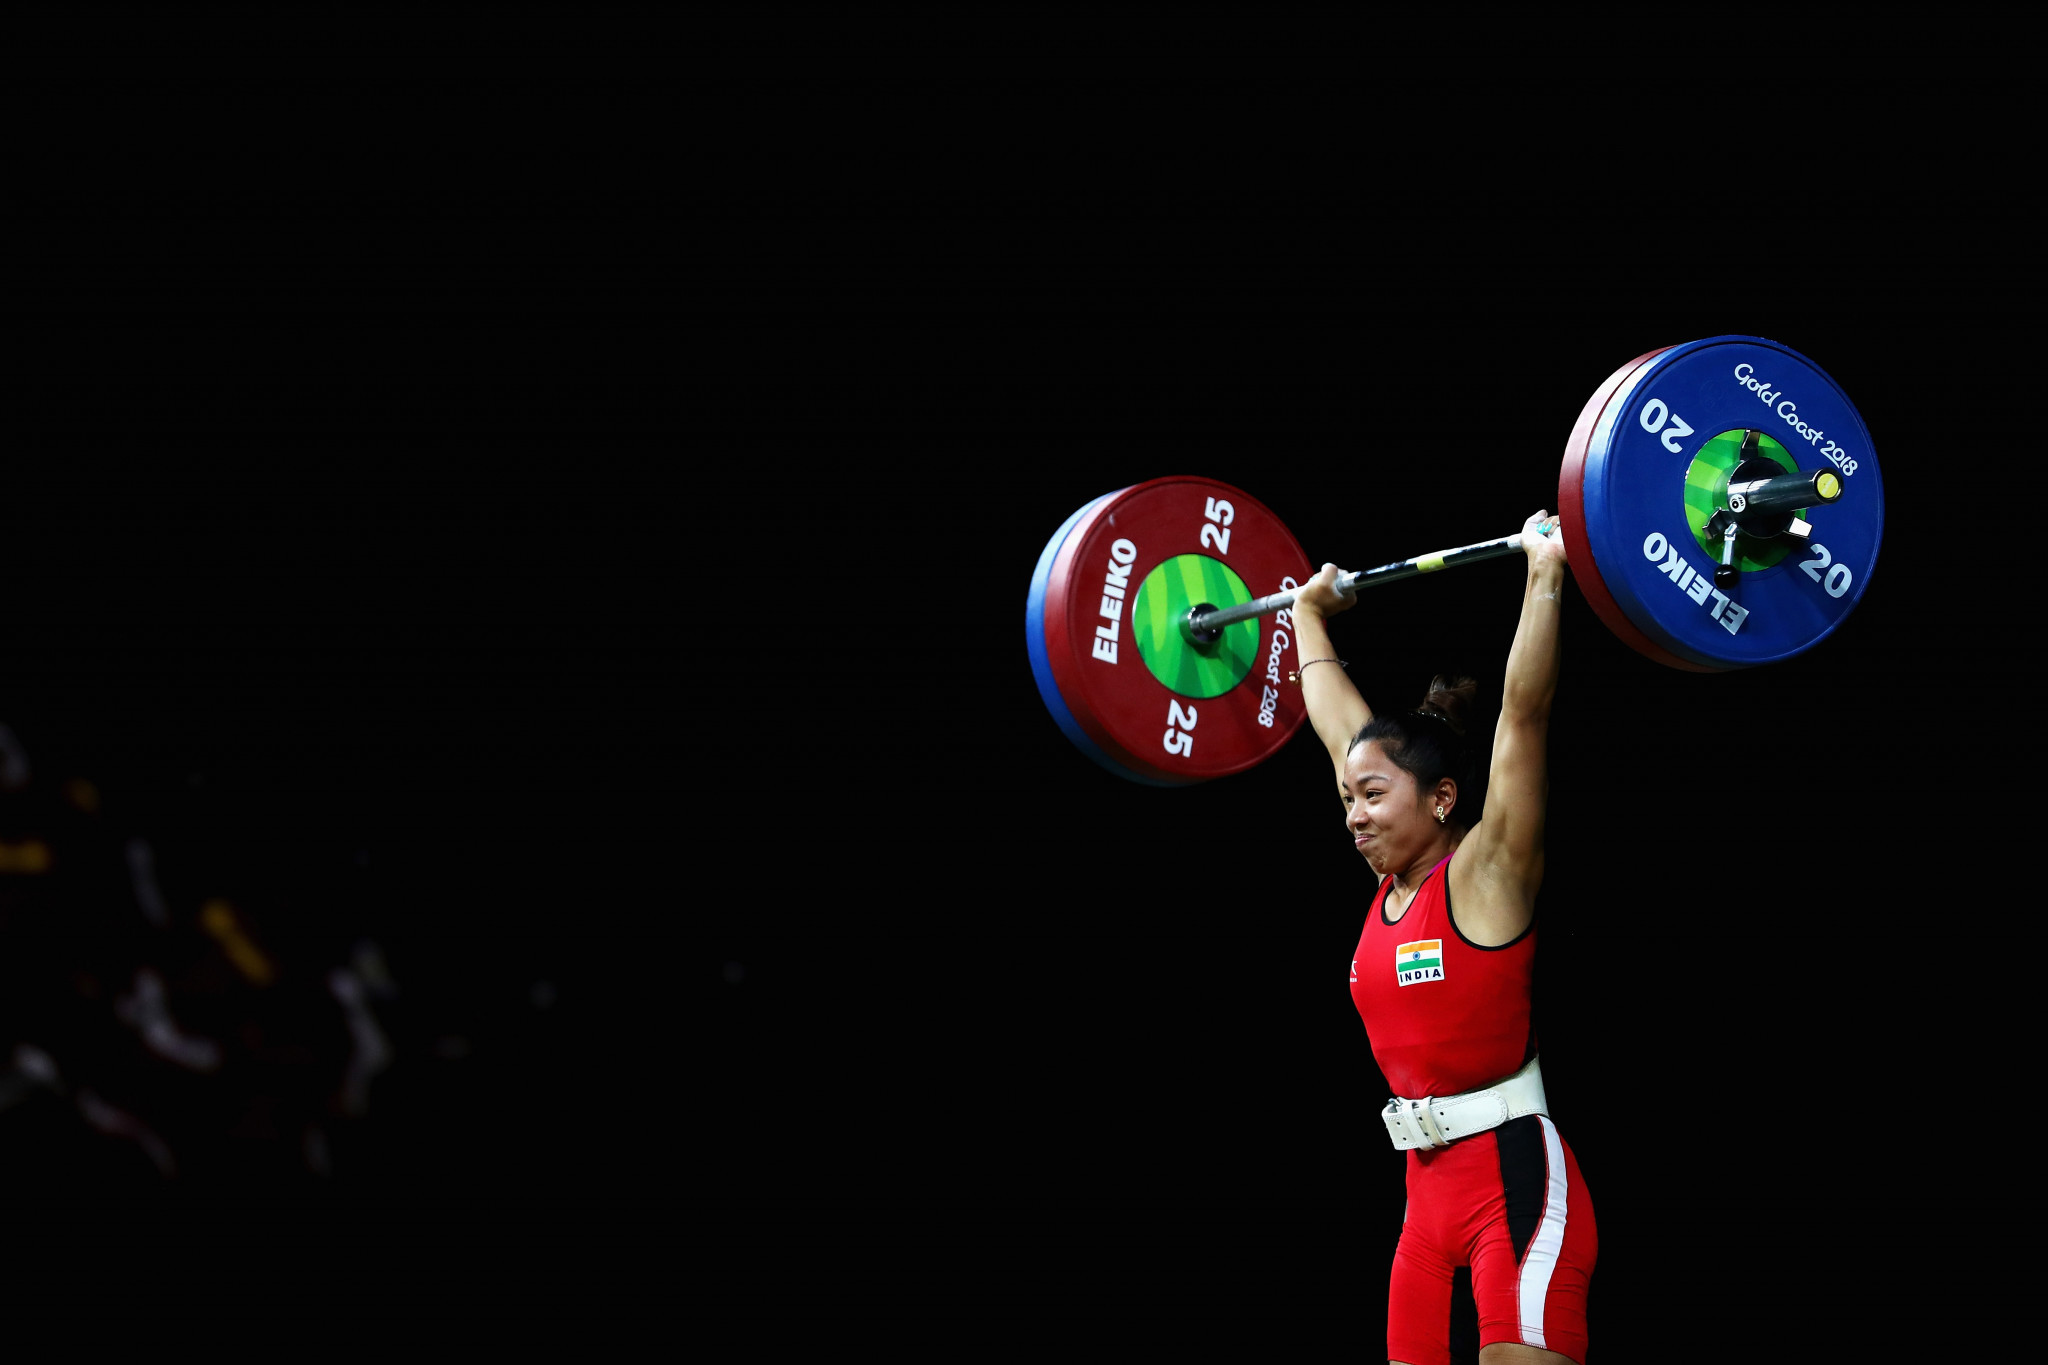 Mirabai Chanu is among the athletes already present at teh camp ©Getty Images